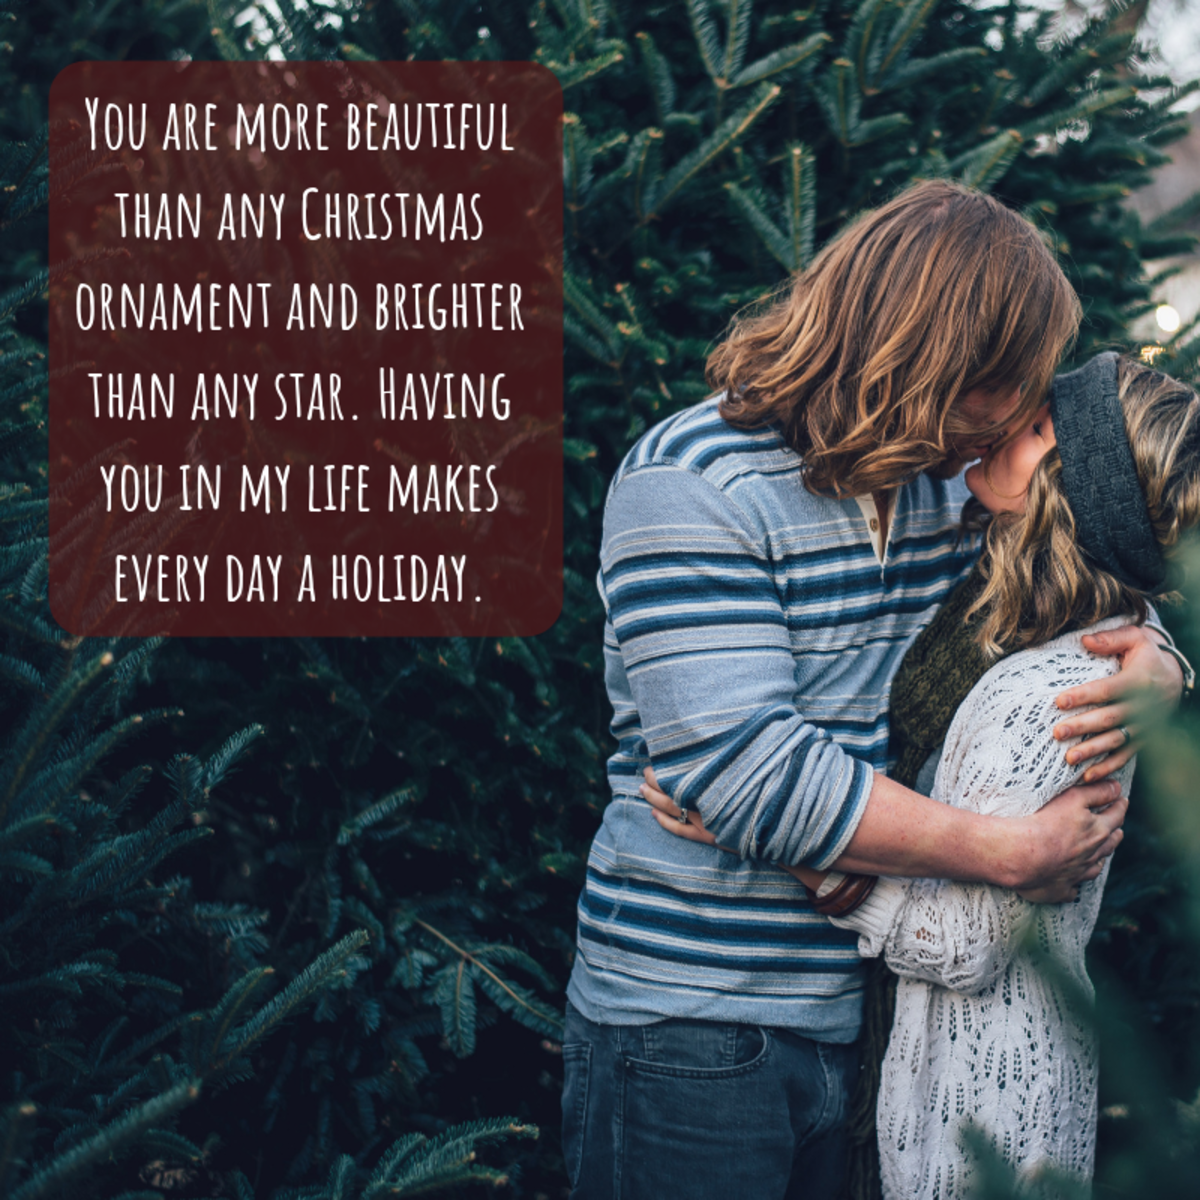 Don't be afraid to get a little cheesy when writing a Christmas card for your special someone.